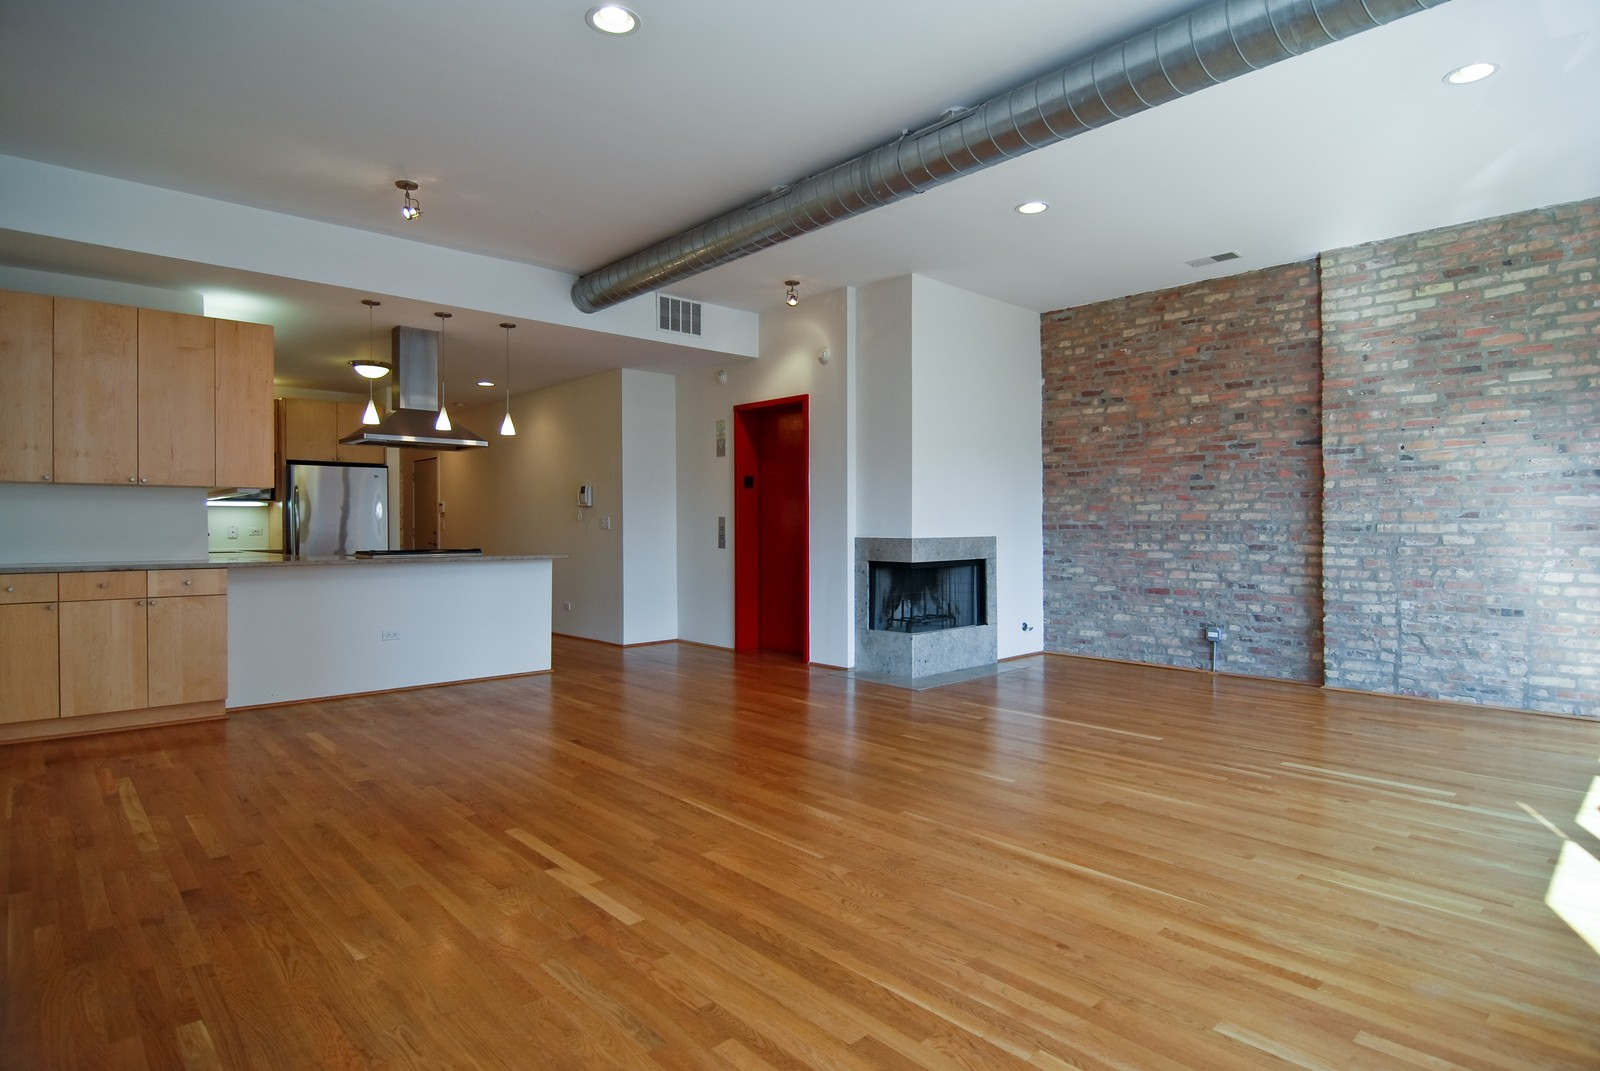 Real Estate Photography - 1526 S. Wabash, 300, Chicago, IL, 60605 - Kitchen / Living Room